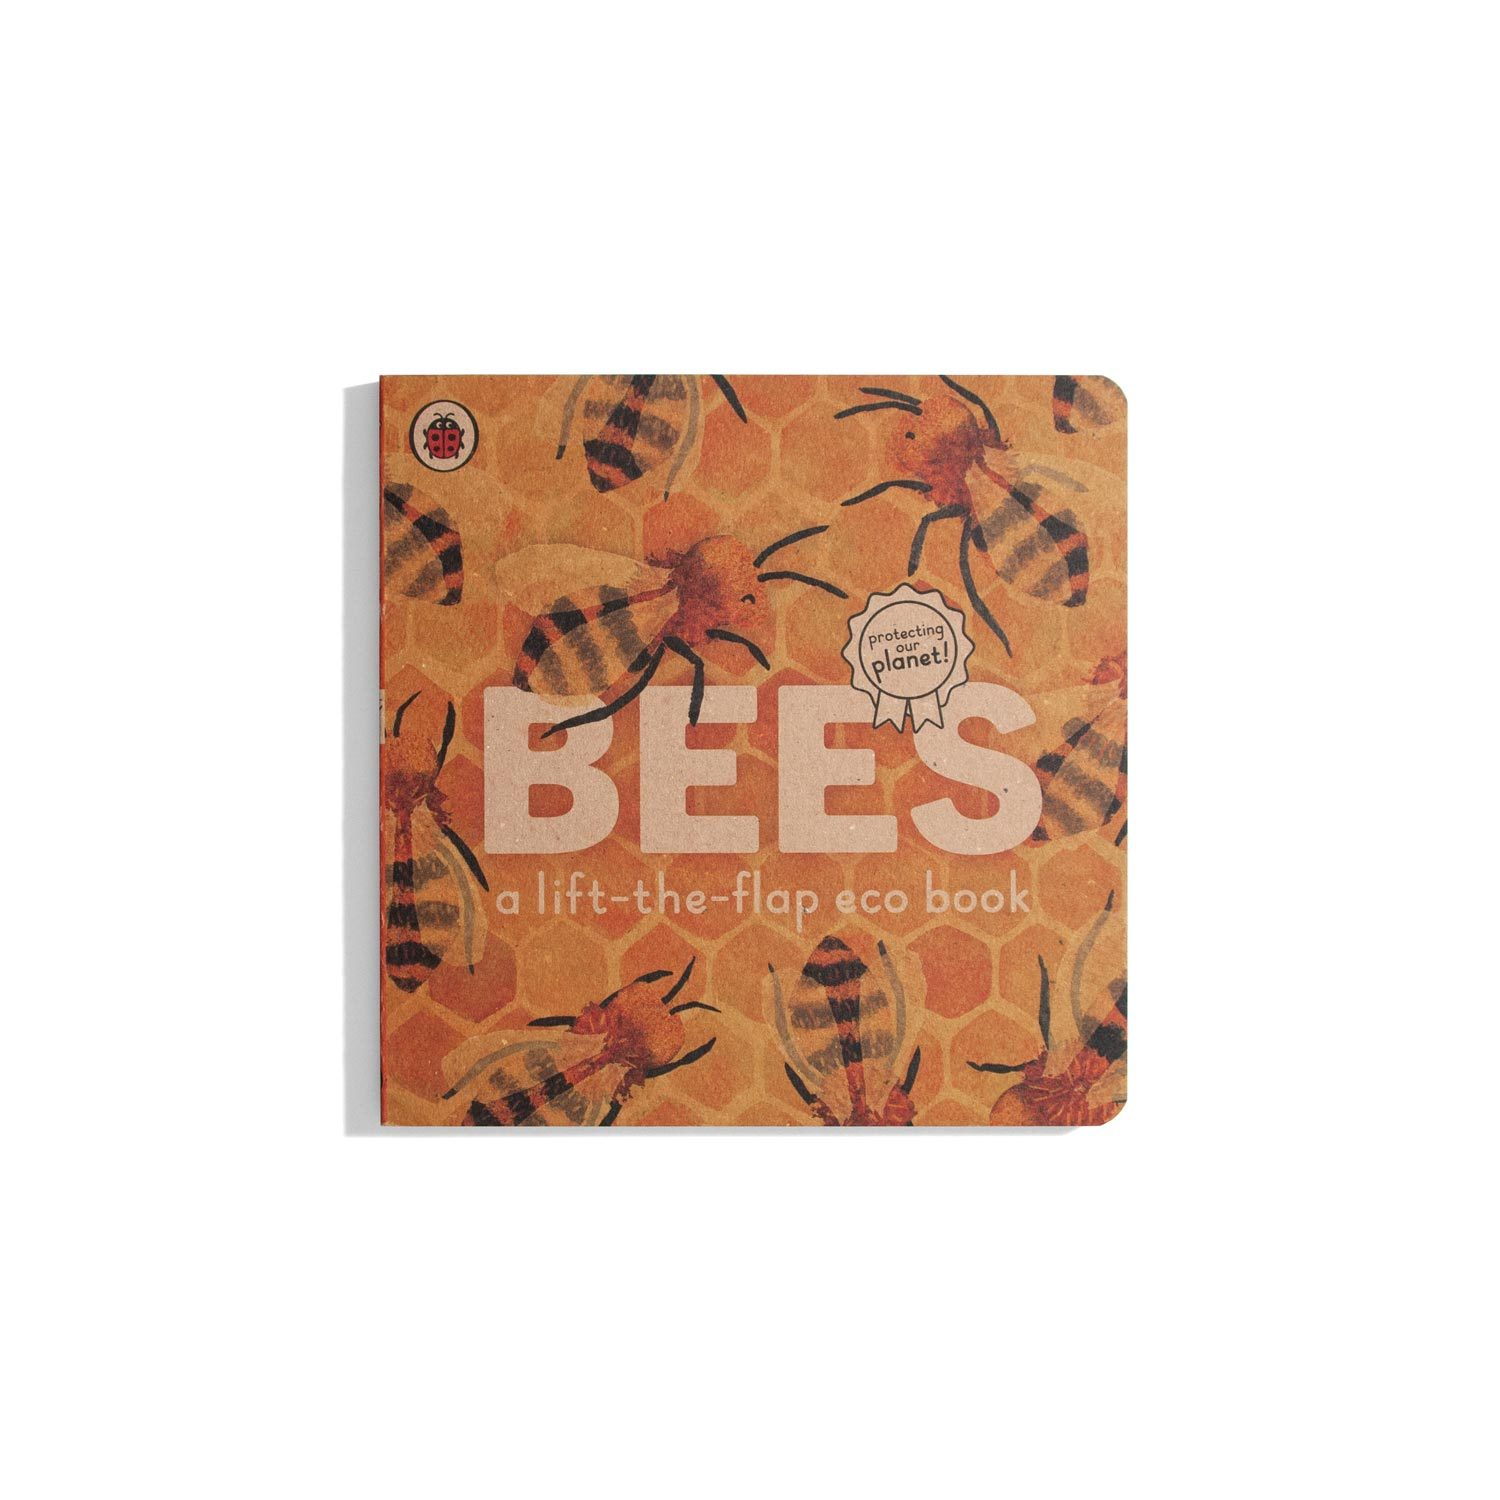 Bees - a lift-the-flap eco book